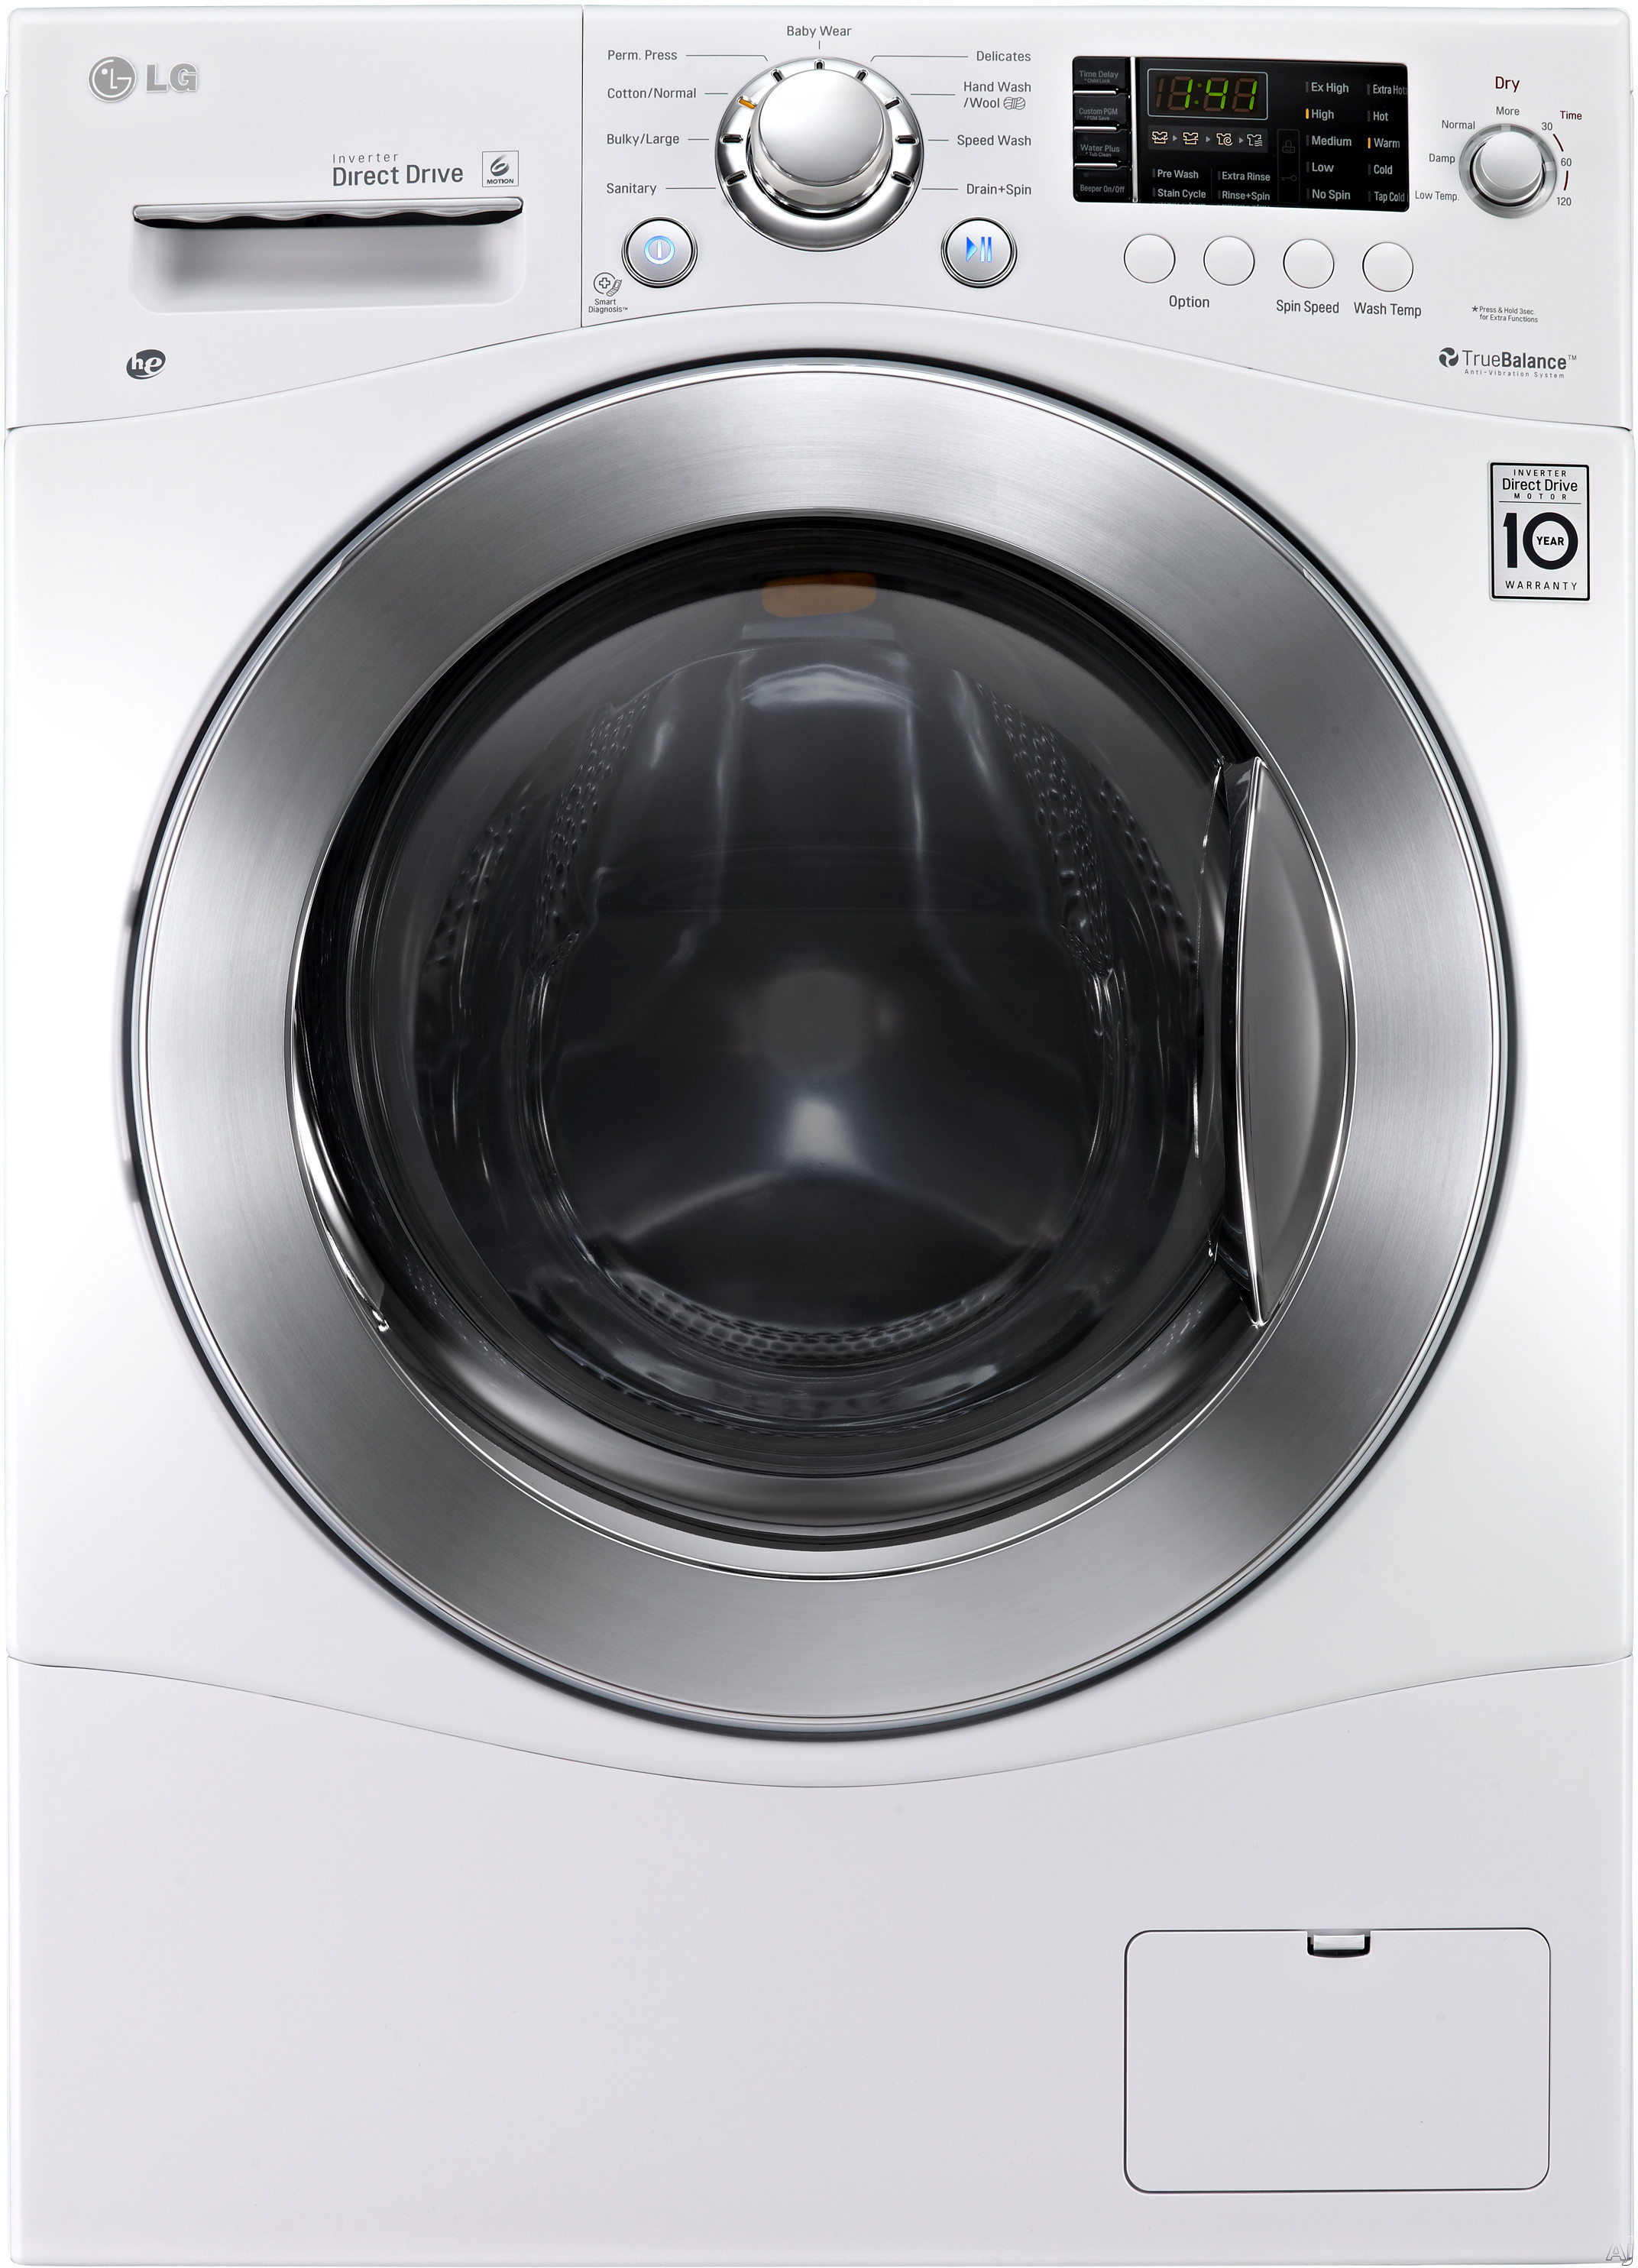 LG WM3477HW 24 Compact Washer Dryer Combo